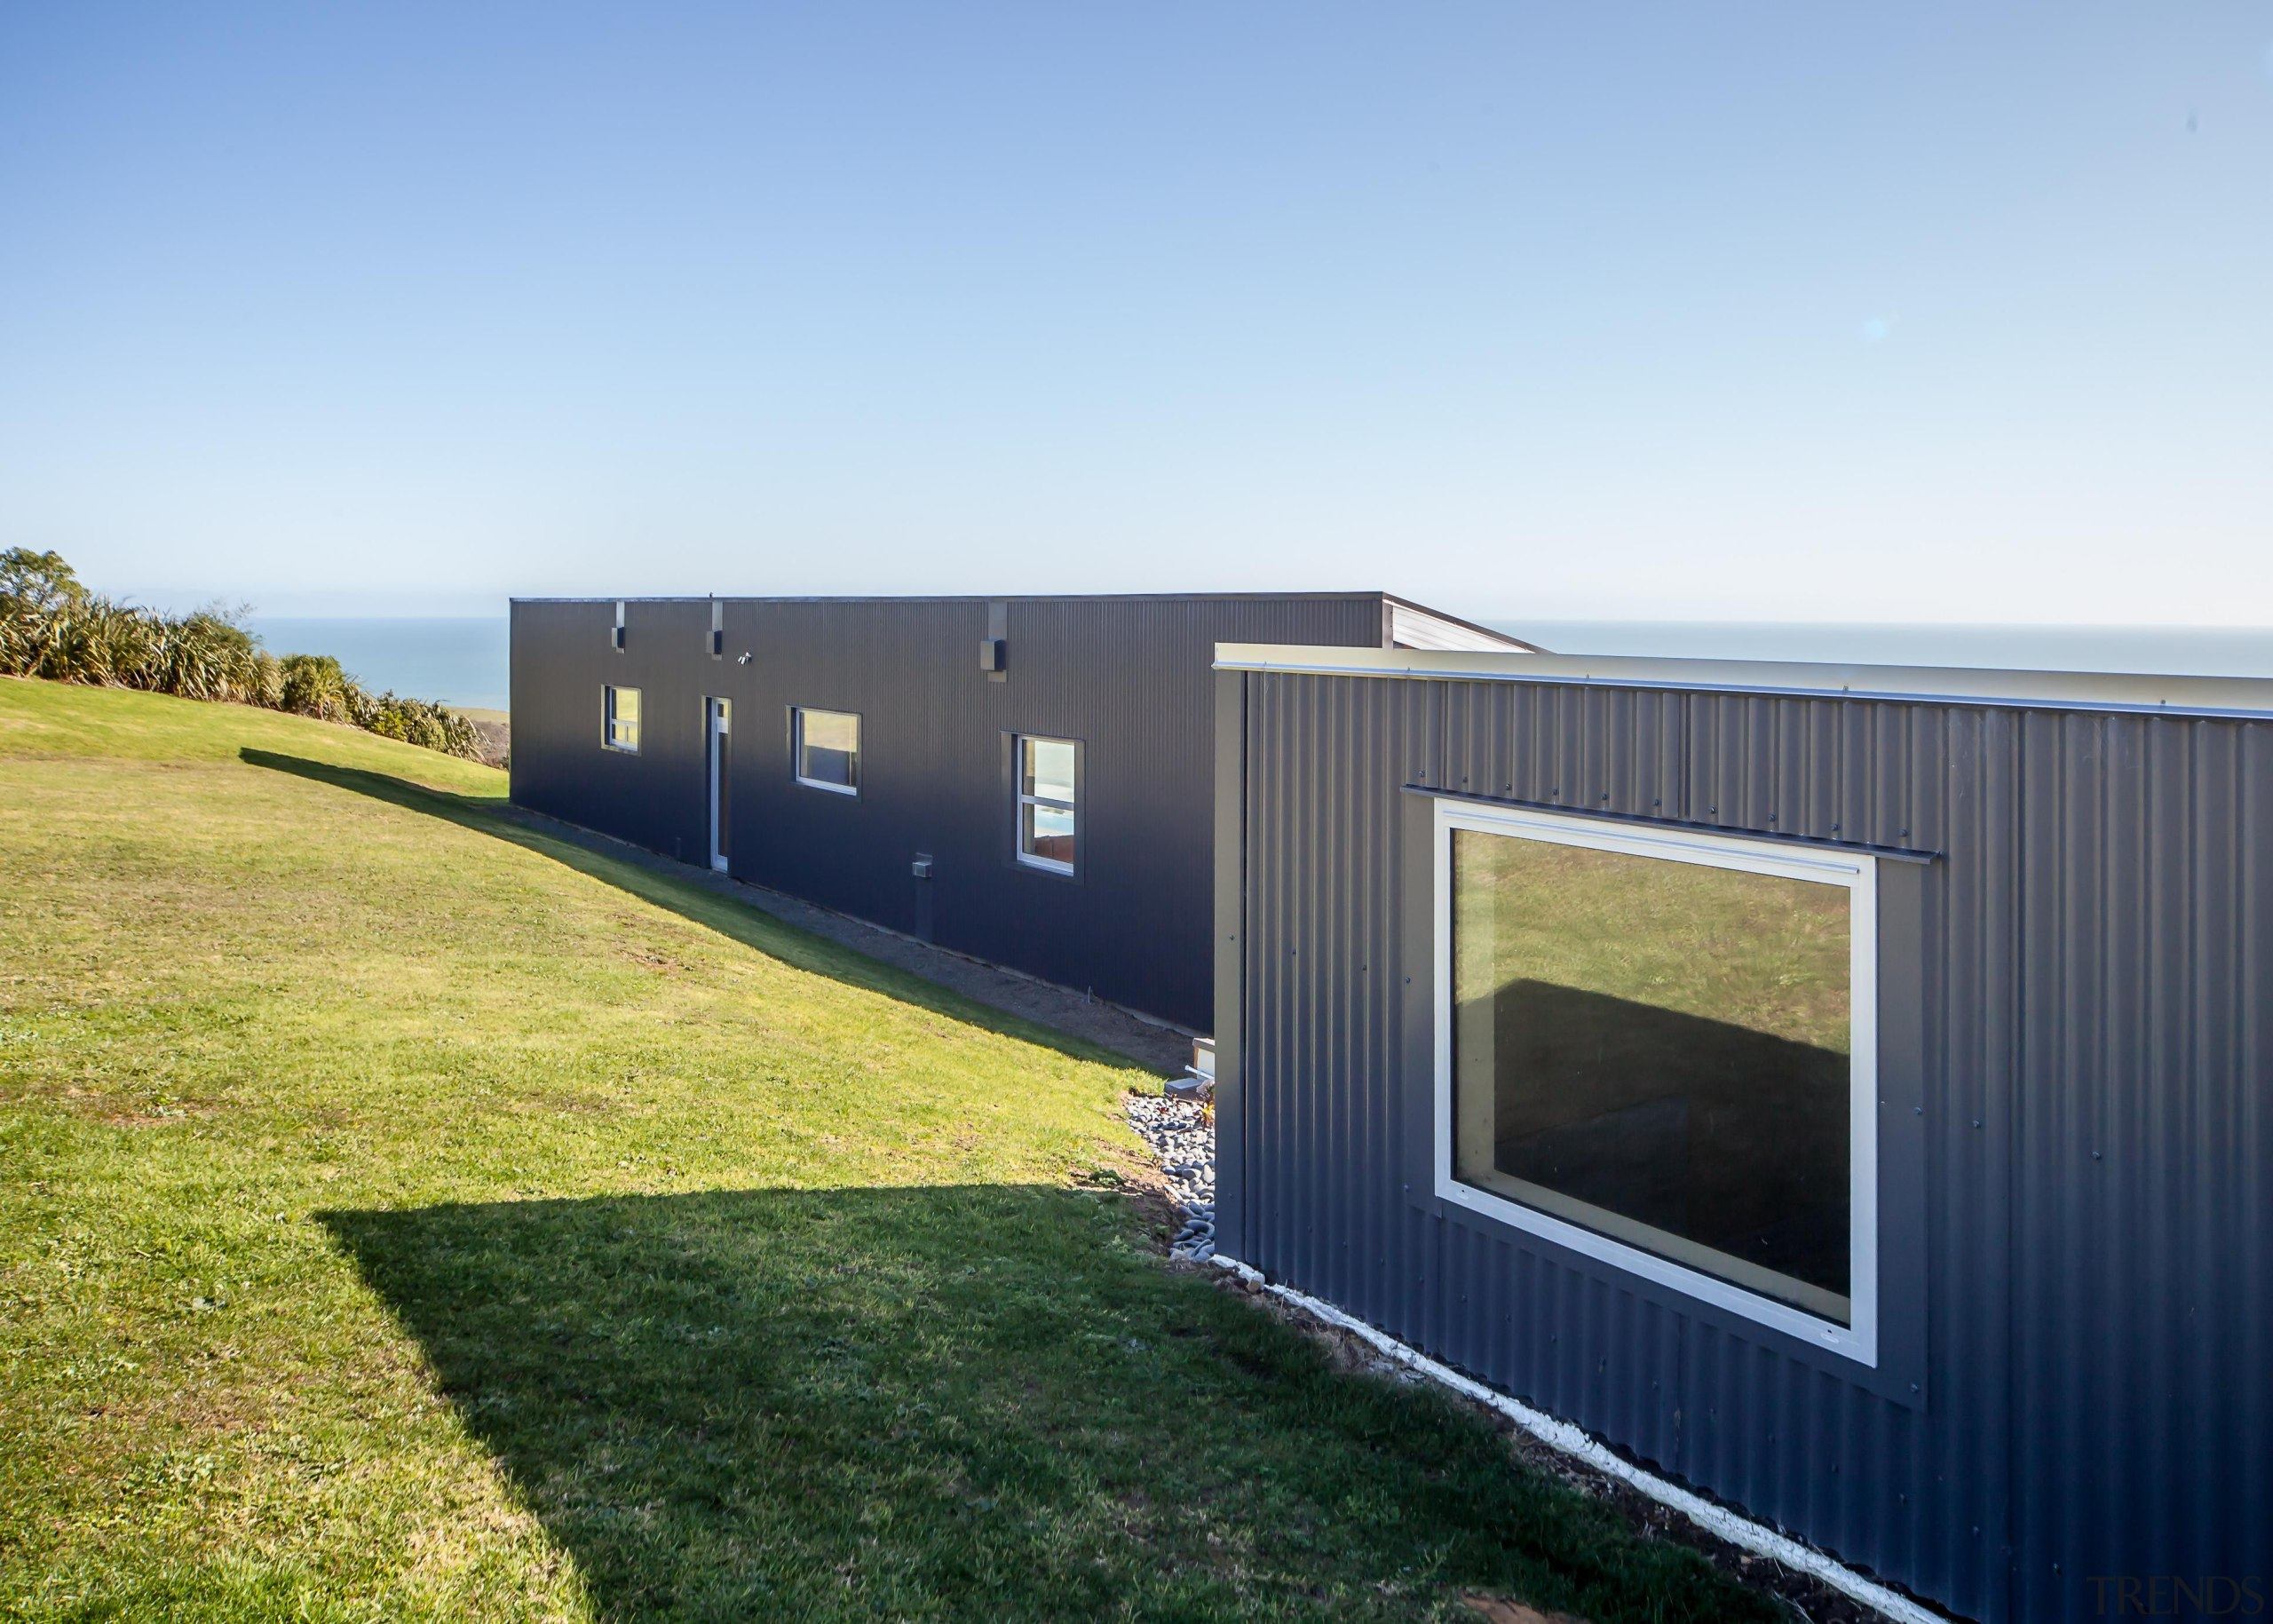 Capturing the spectacular views was a priority for architecture, facade, grass, home, house, property, real estate, shed, siding, sky, white